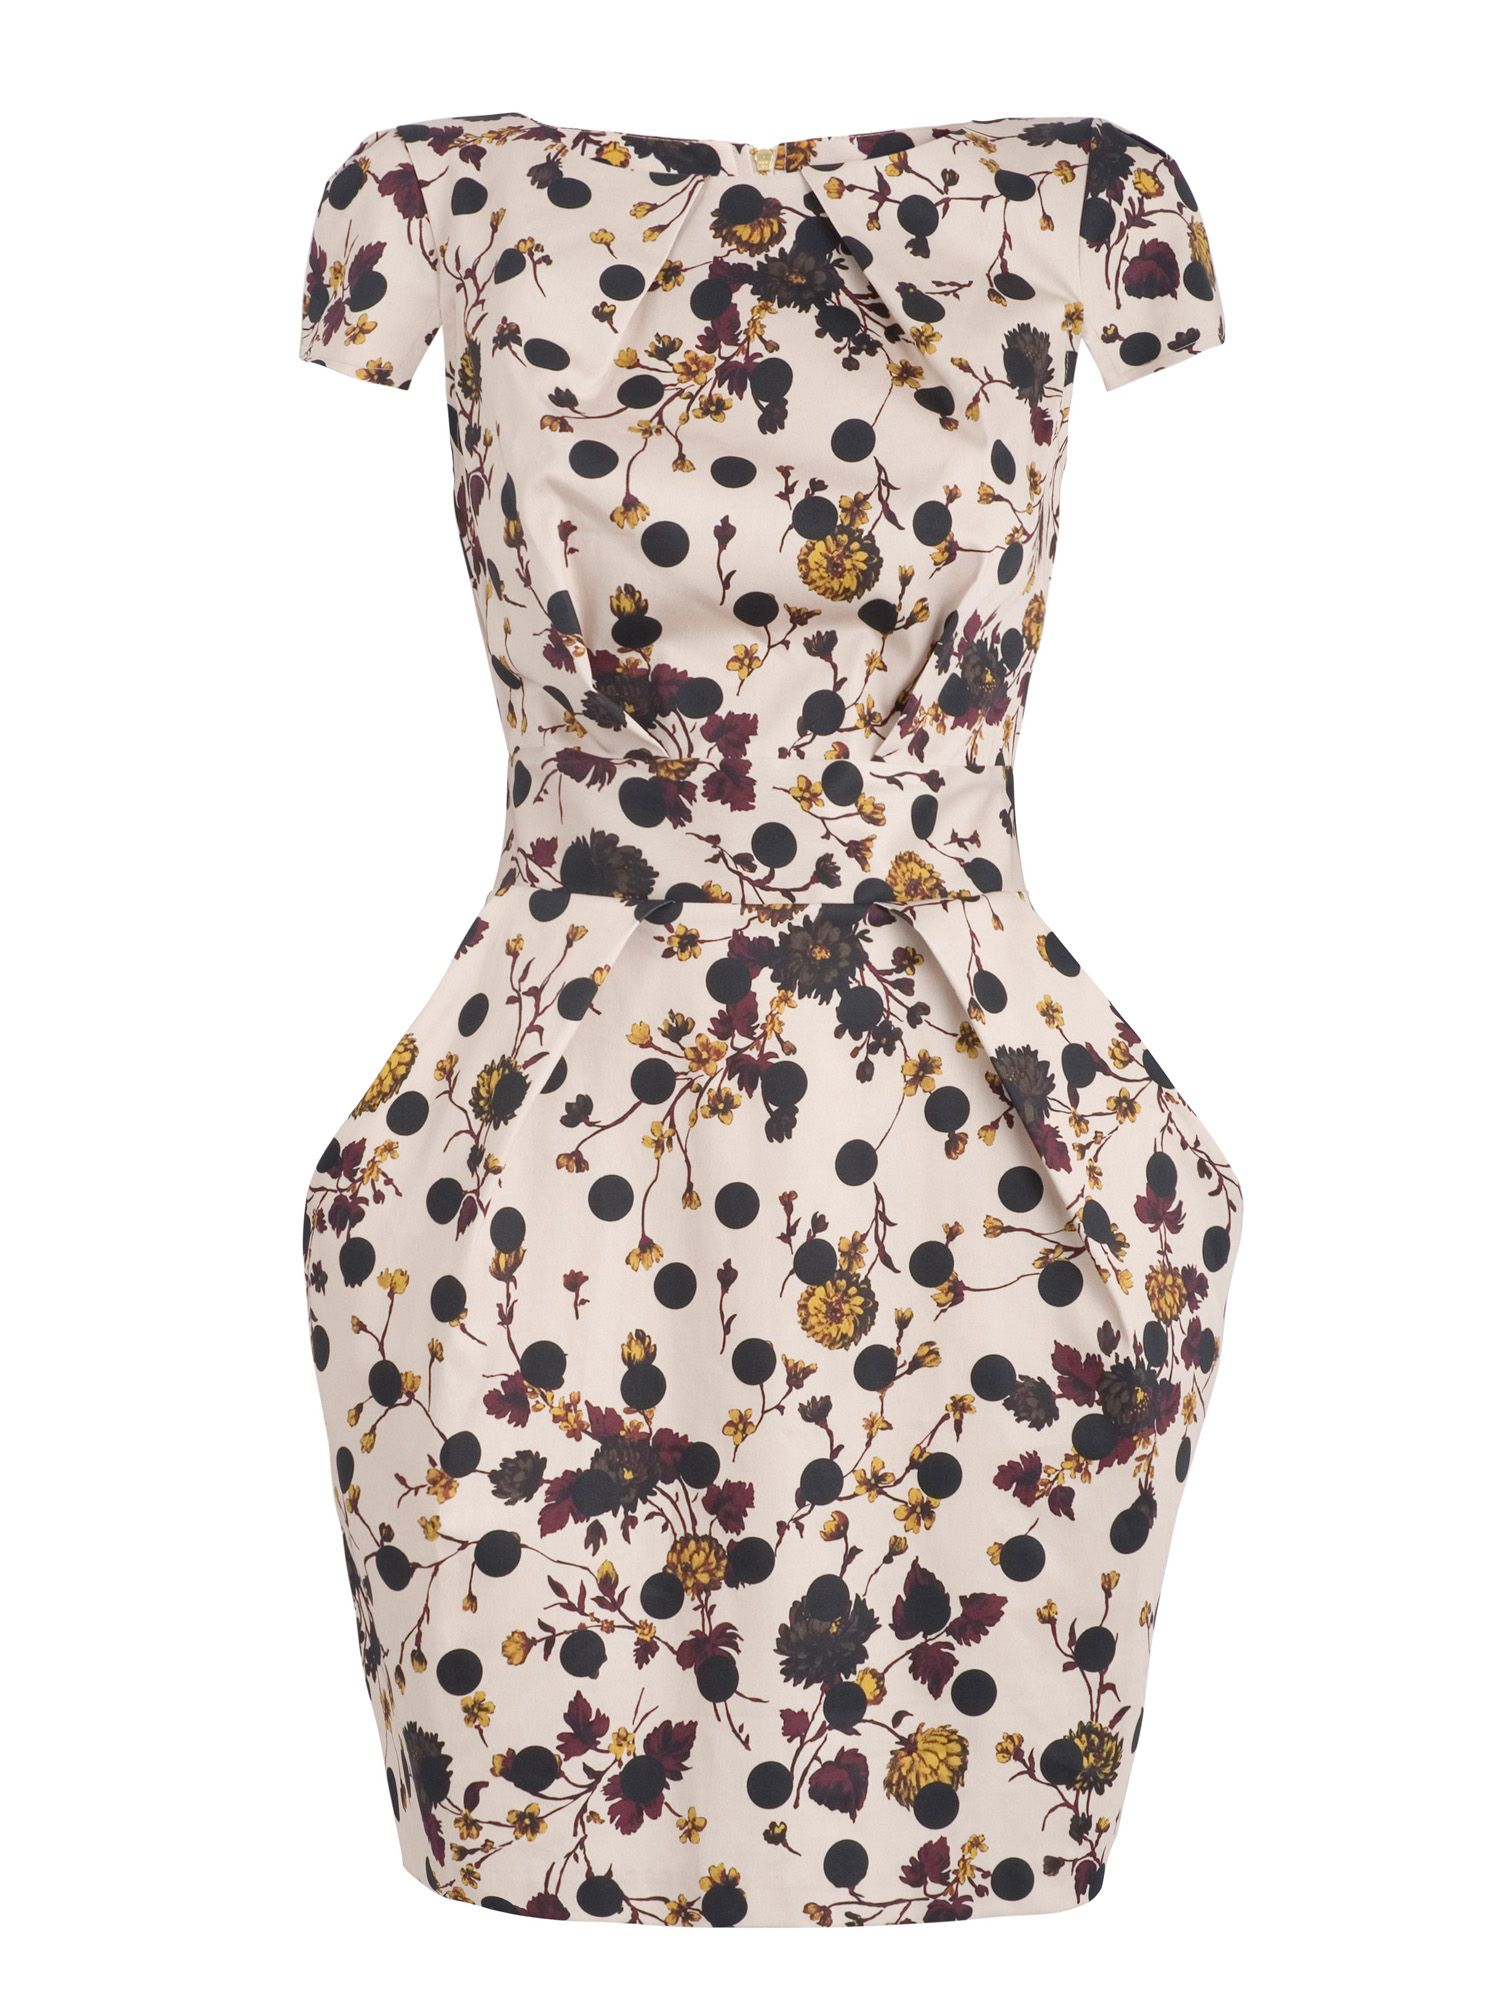 Polka & floral tie back dress